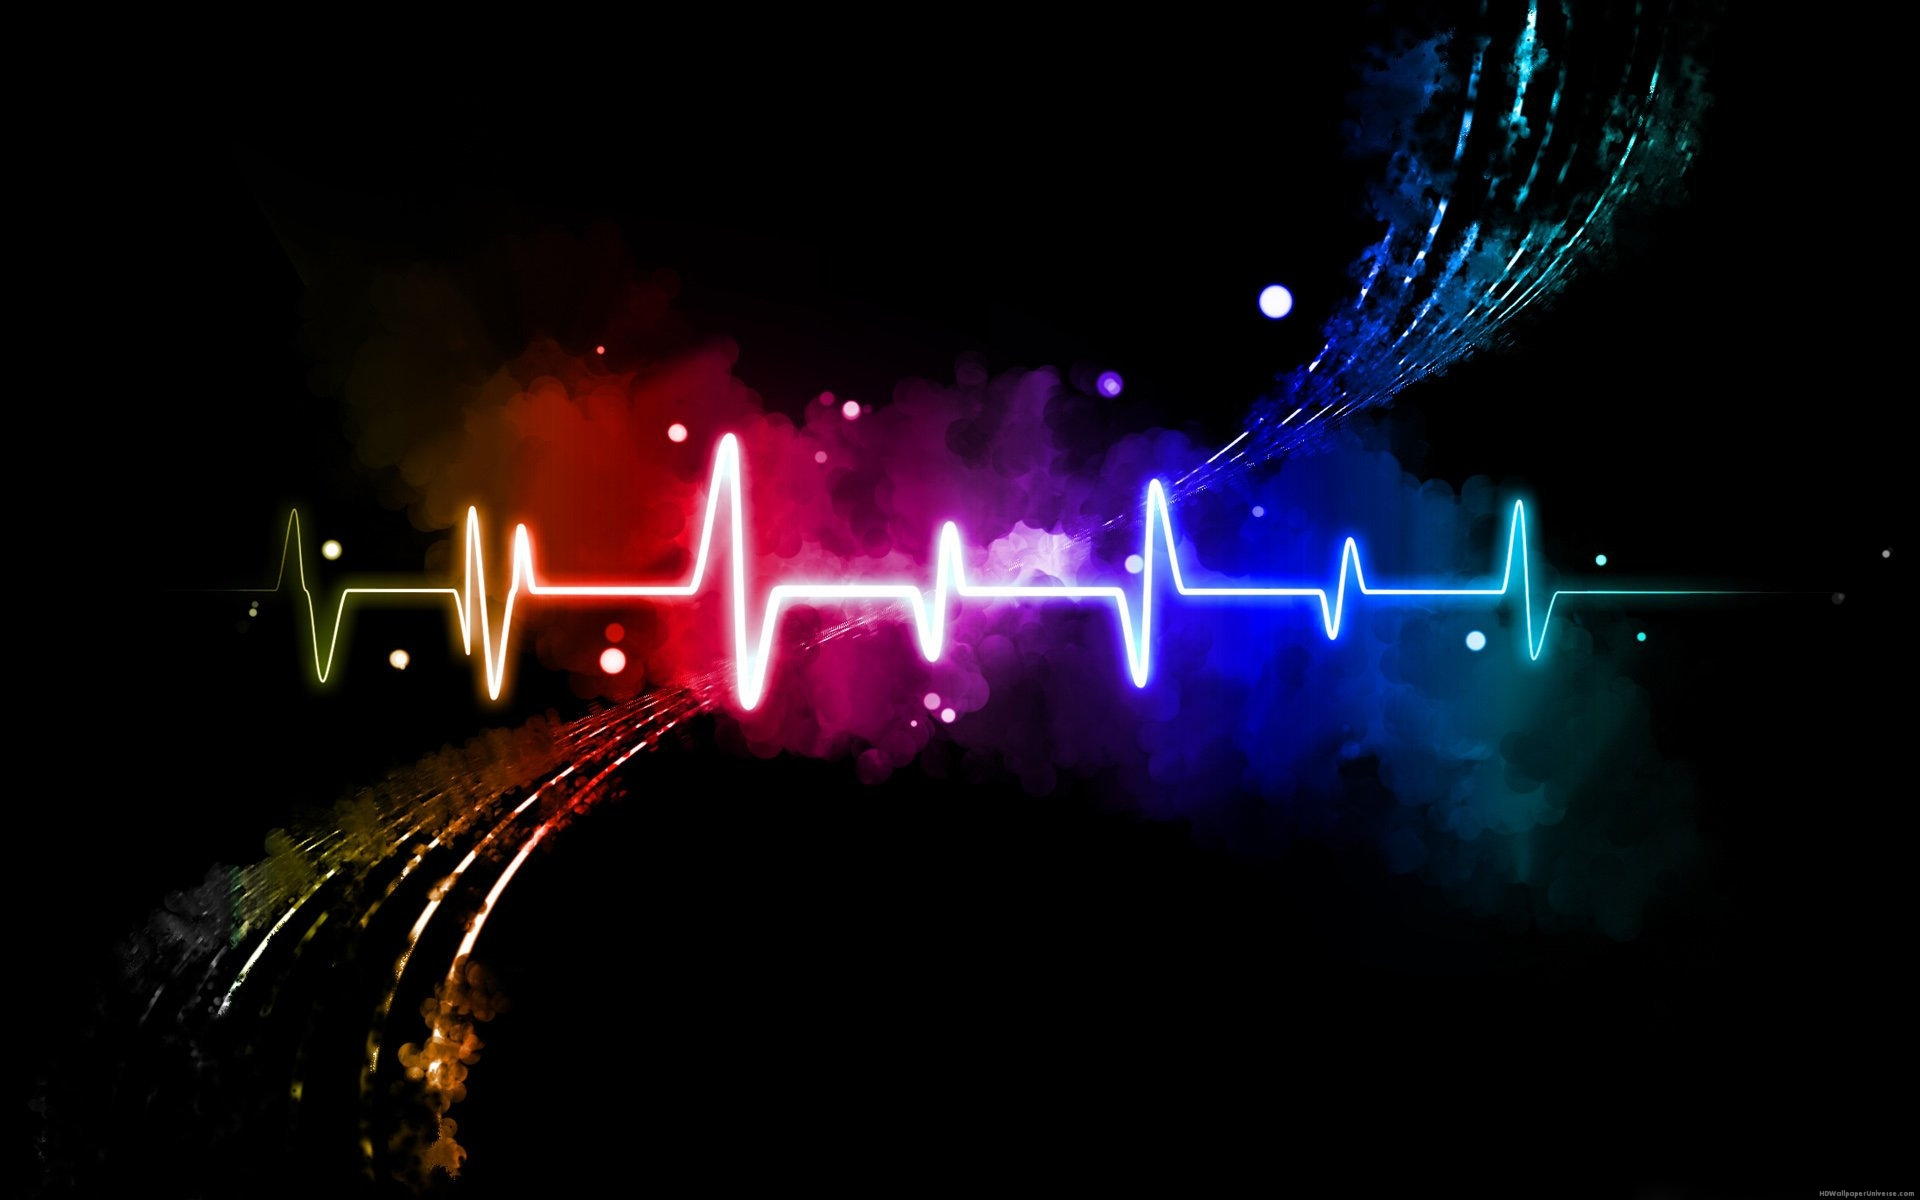 colorful-abstract-soundwave-hd-wallpapers.jpg